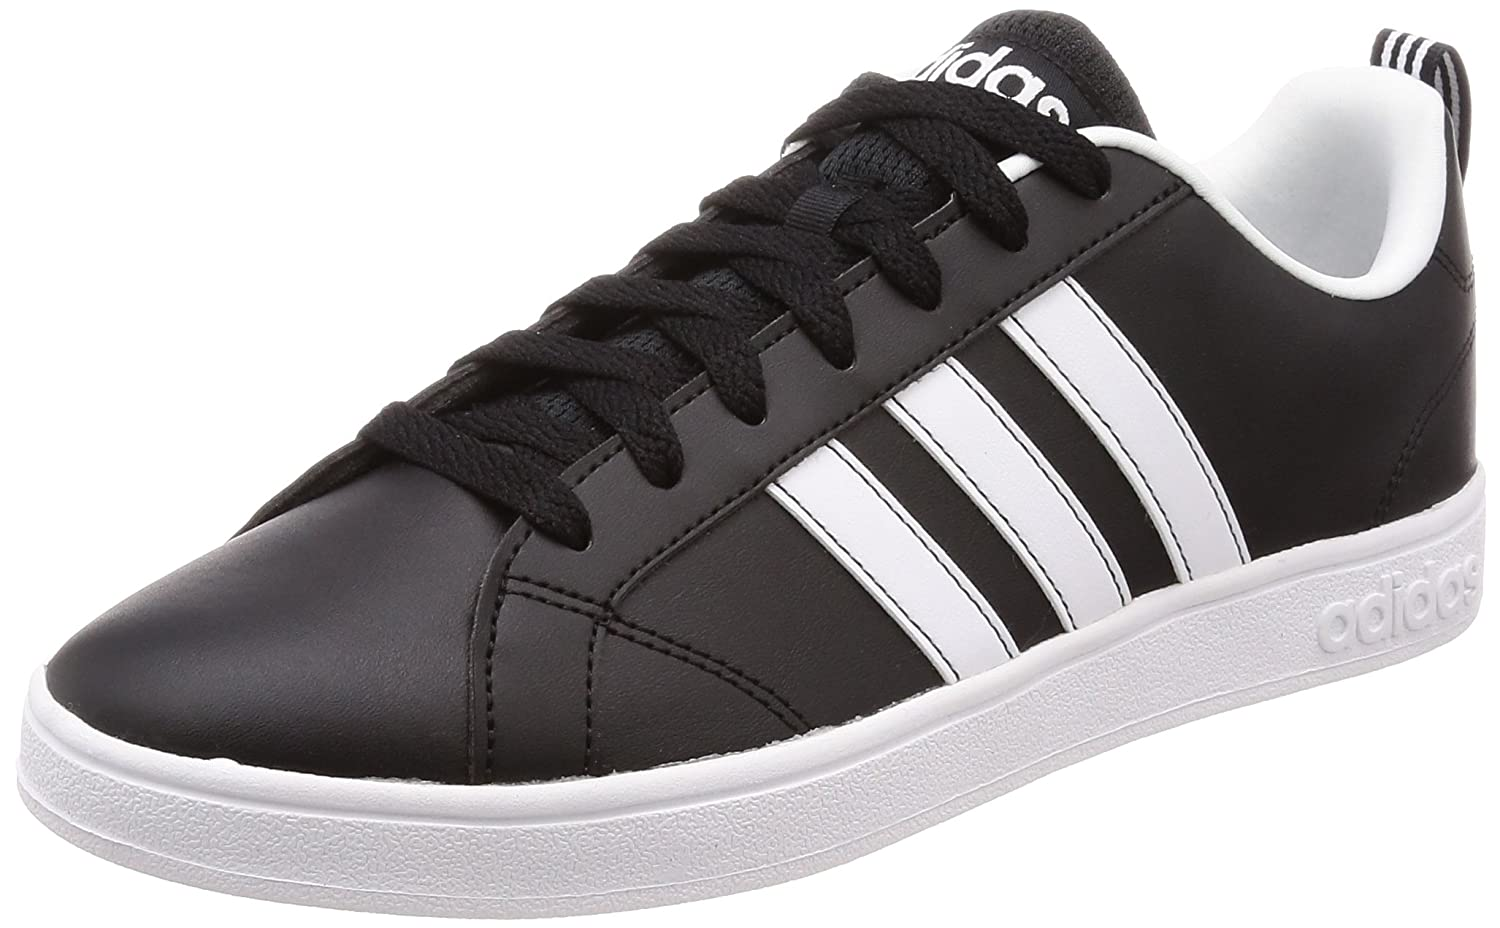 TALLA 42 EU. adidas Vs Advantage, Zapatillas Unisex Adulto